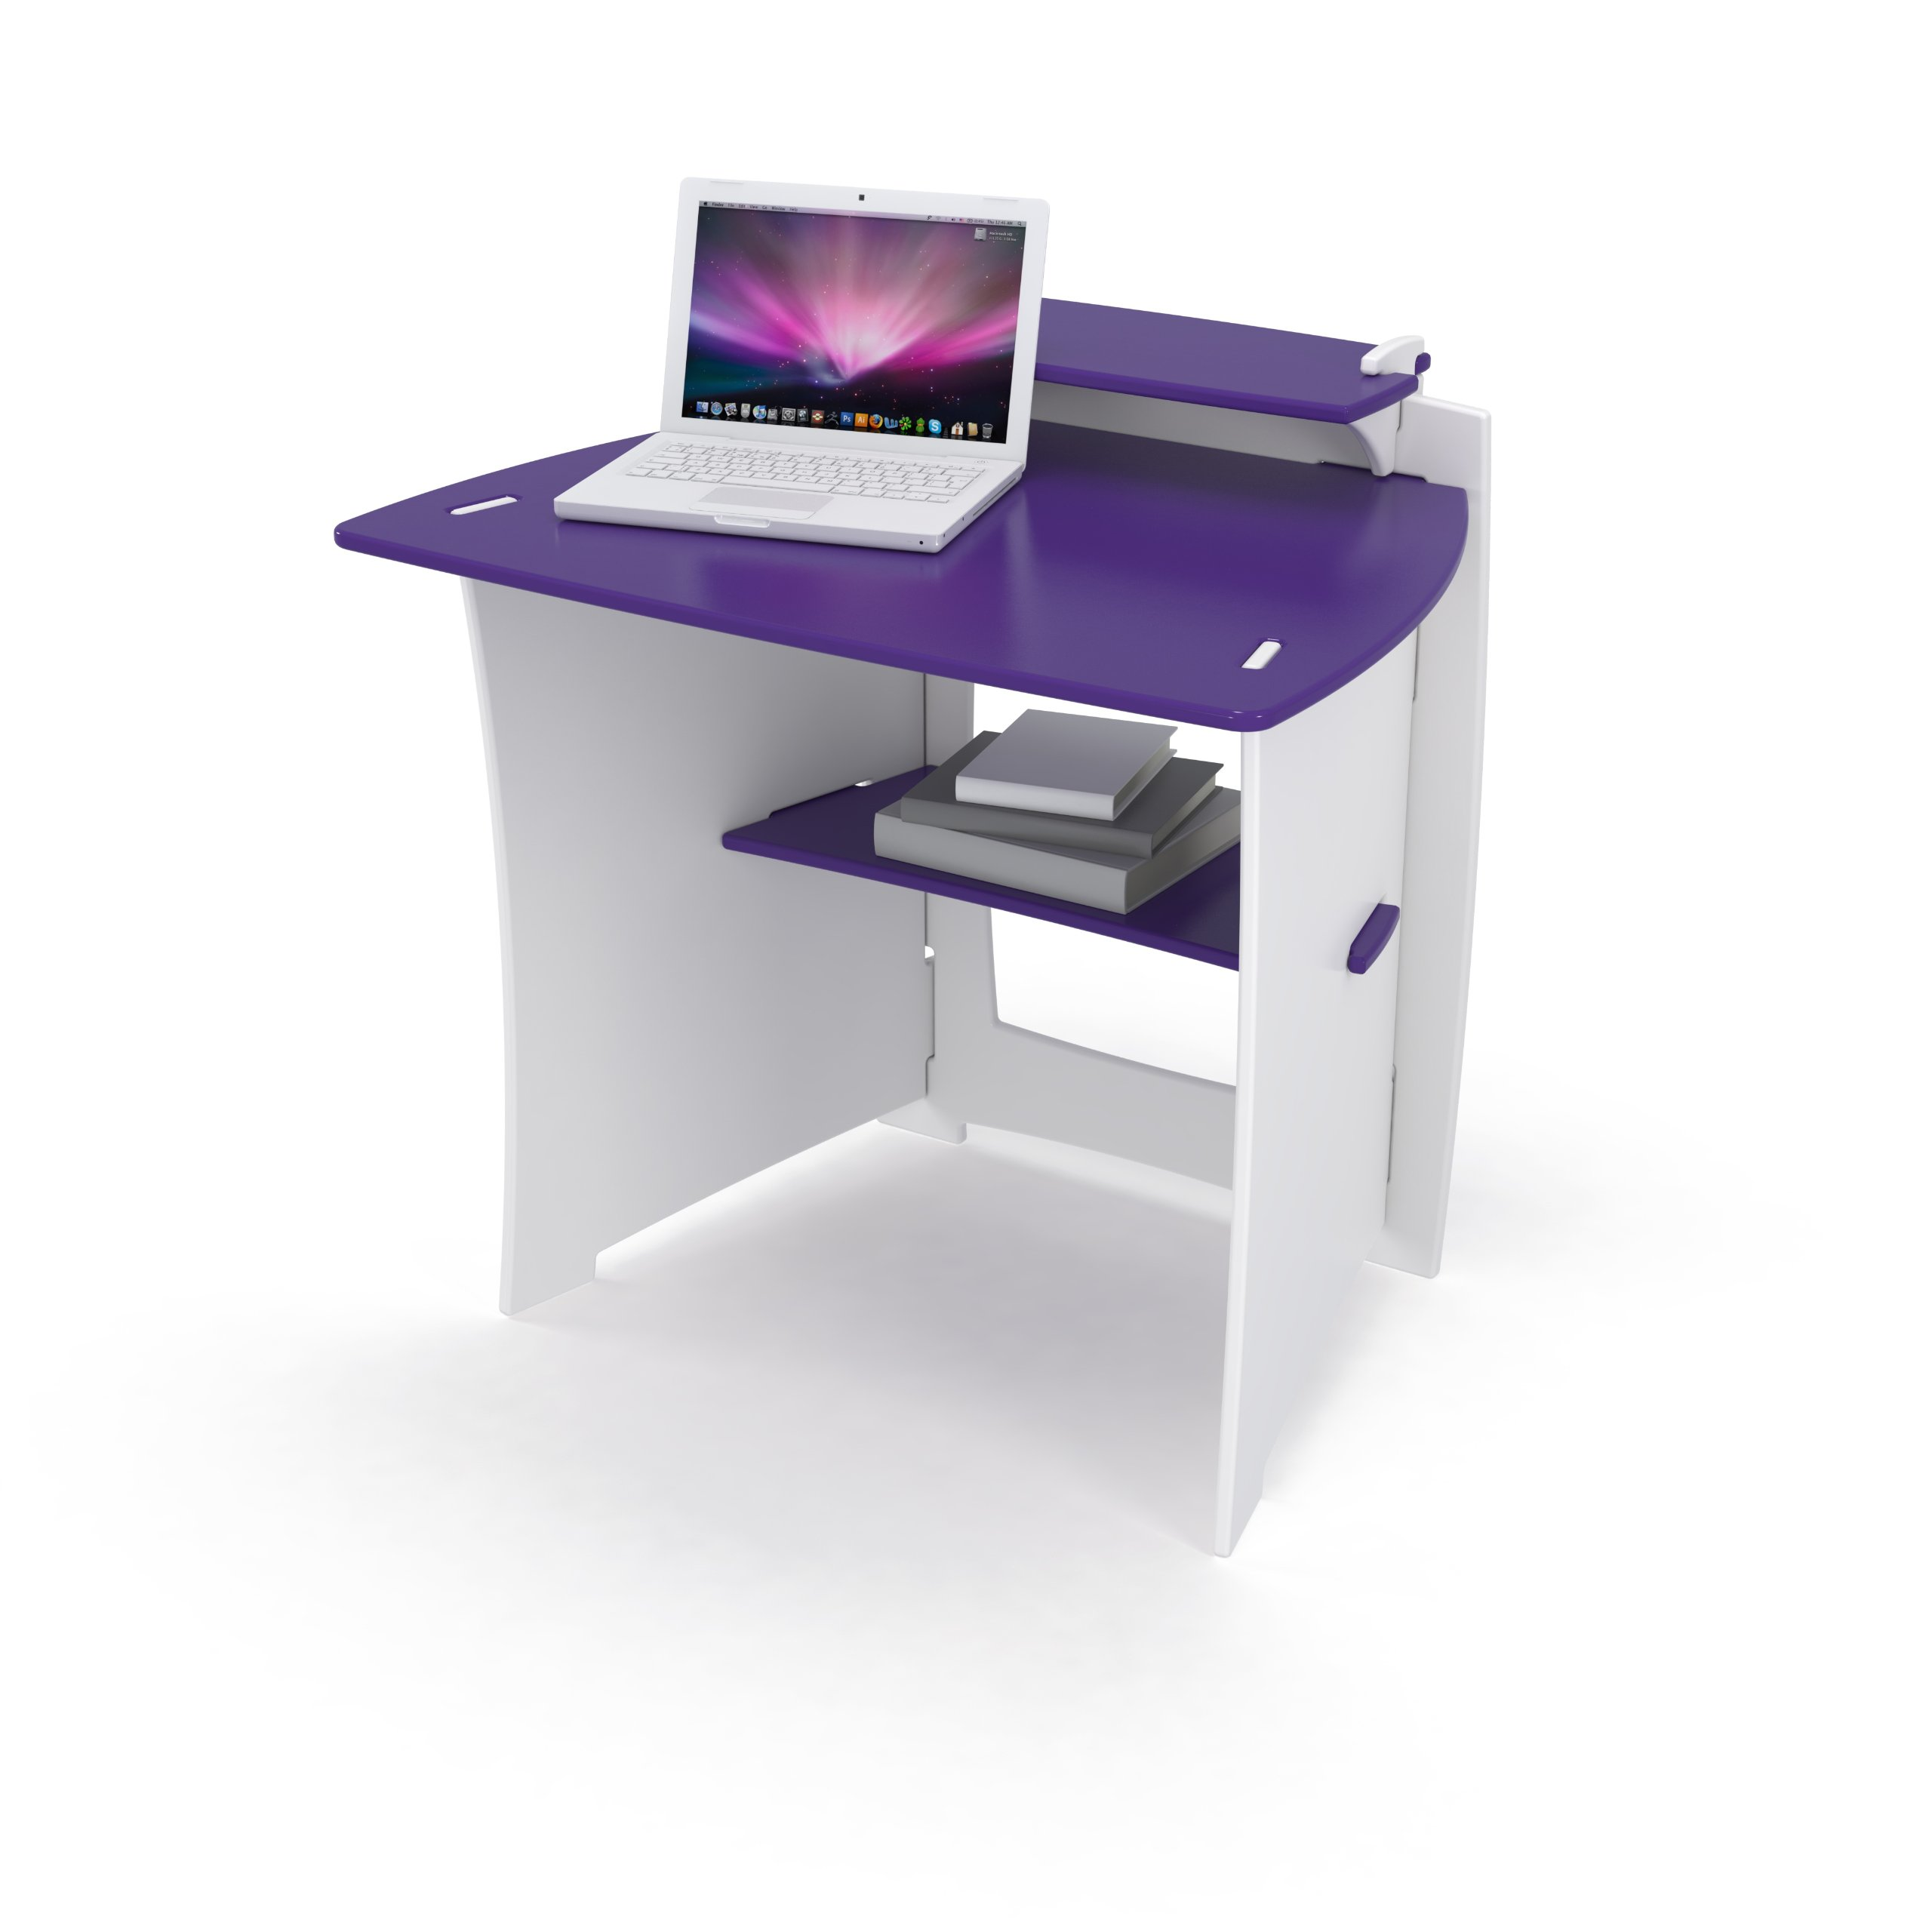 Legare 34-Inch Kids' Desk, Purple and White by Legar